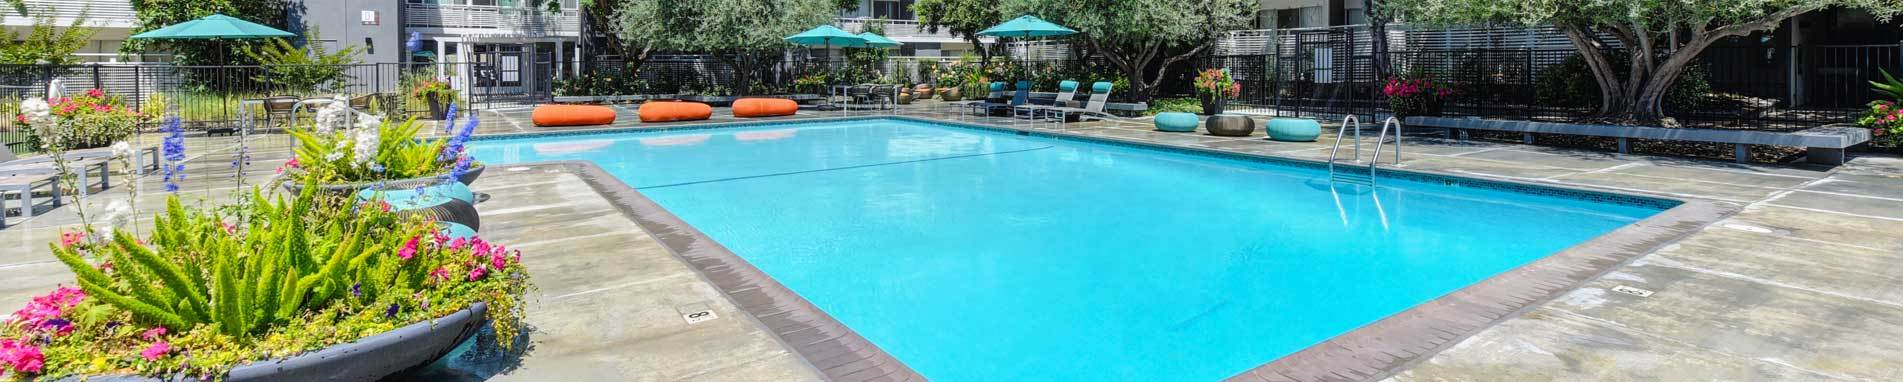 Apartments in Sunnyvale offering